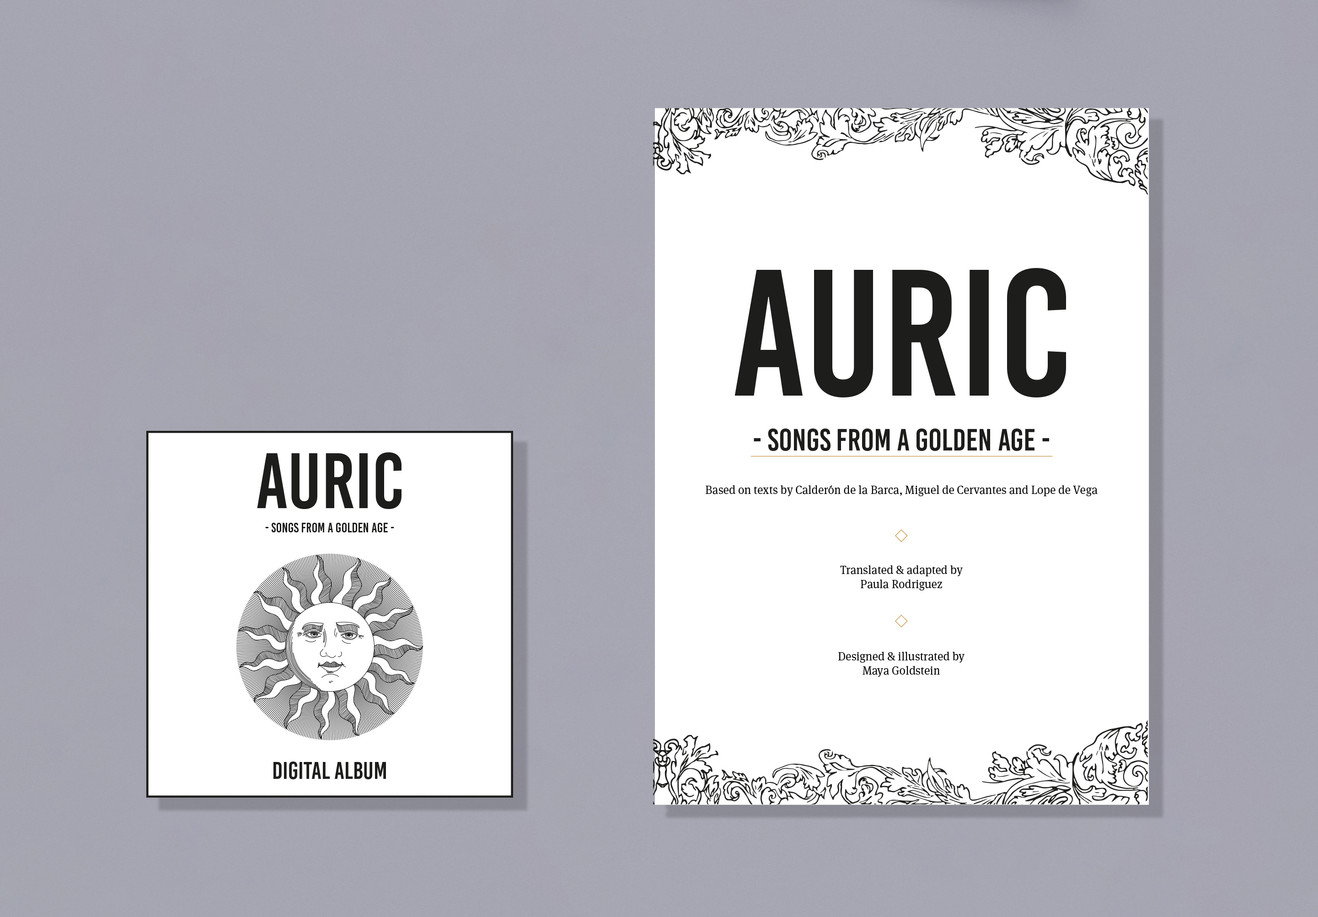 AURIC THE VIRTUAL EXPERIENCE including AURIC THE BOOK (PDF) & AURIC THE ALBUM (DIGITAL) £25